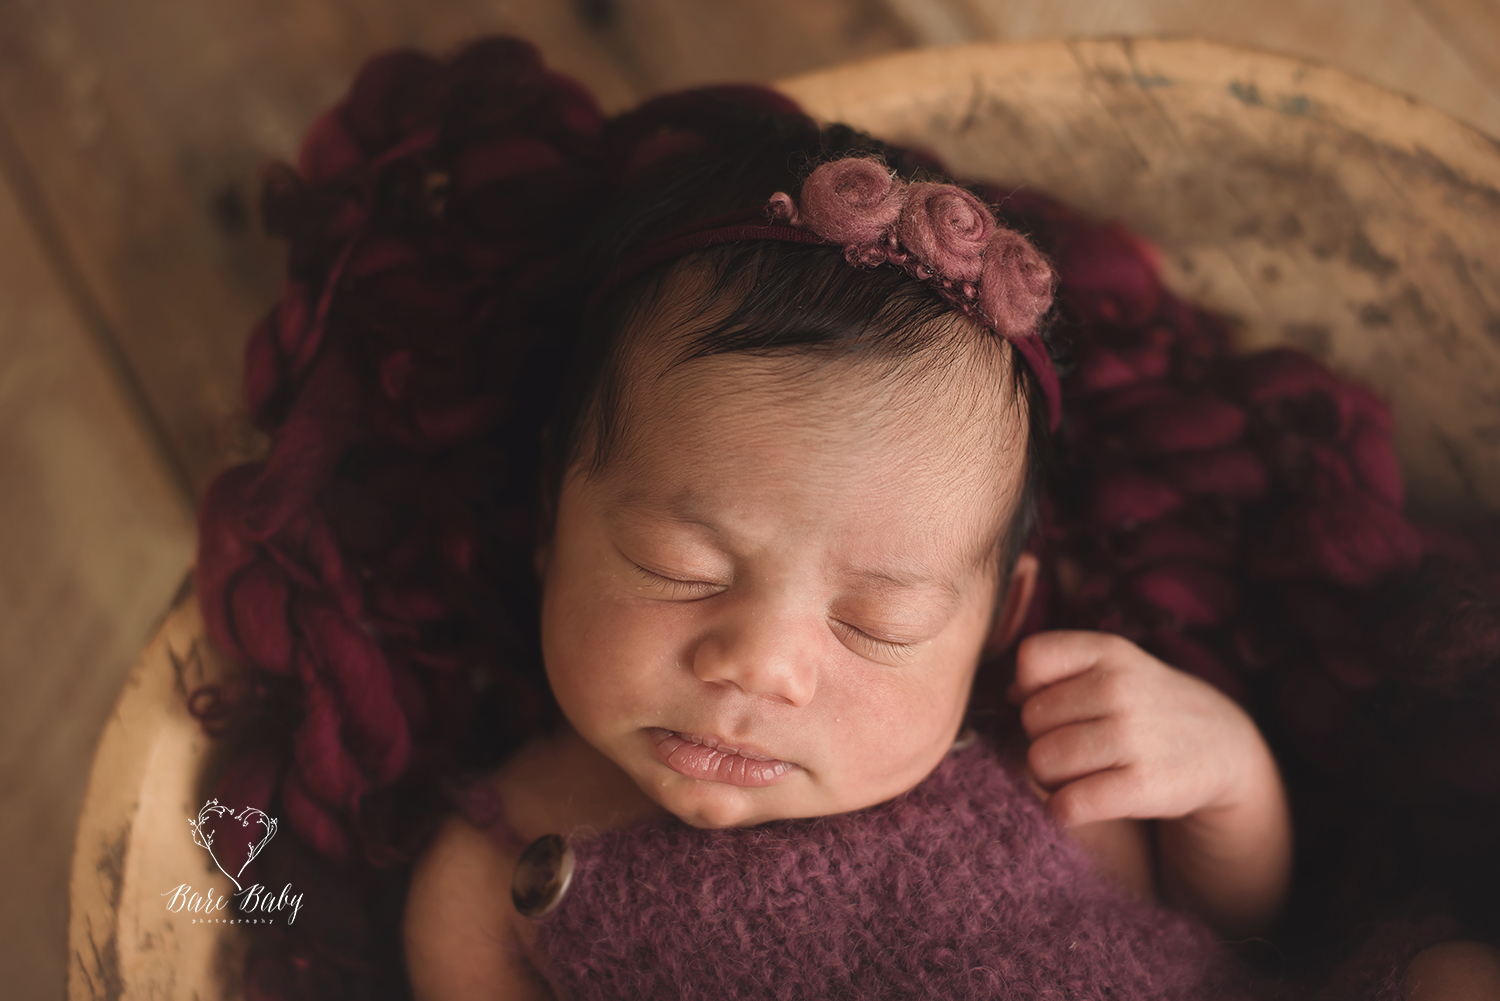 newborn-photographer-near-me-columbus-ohio.jpg